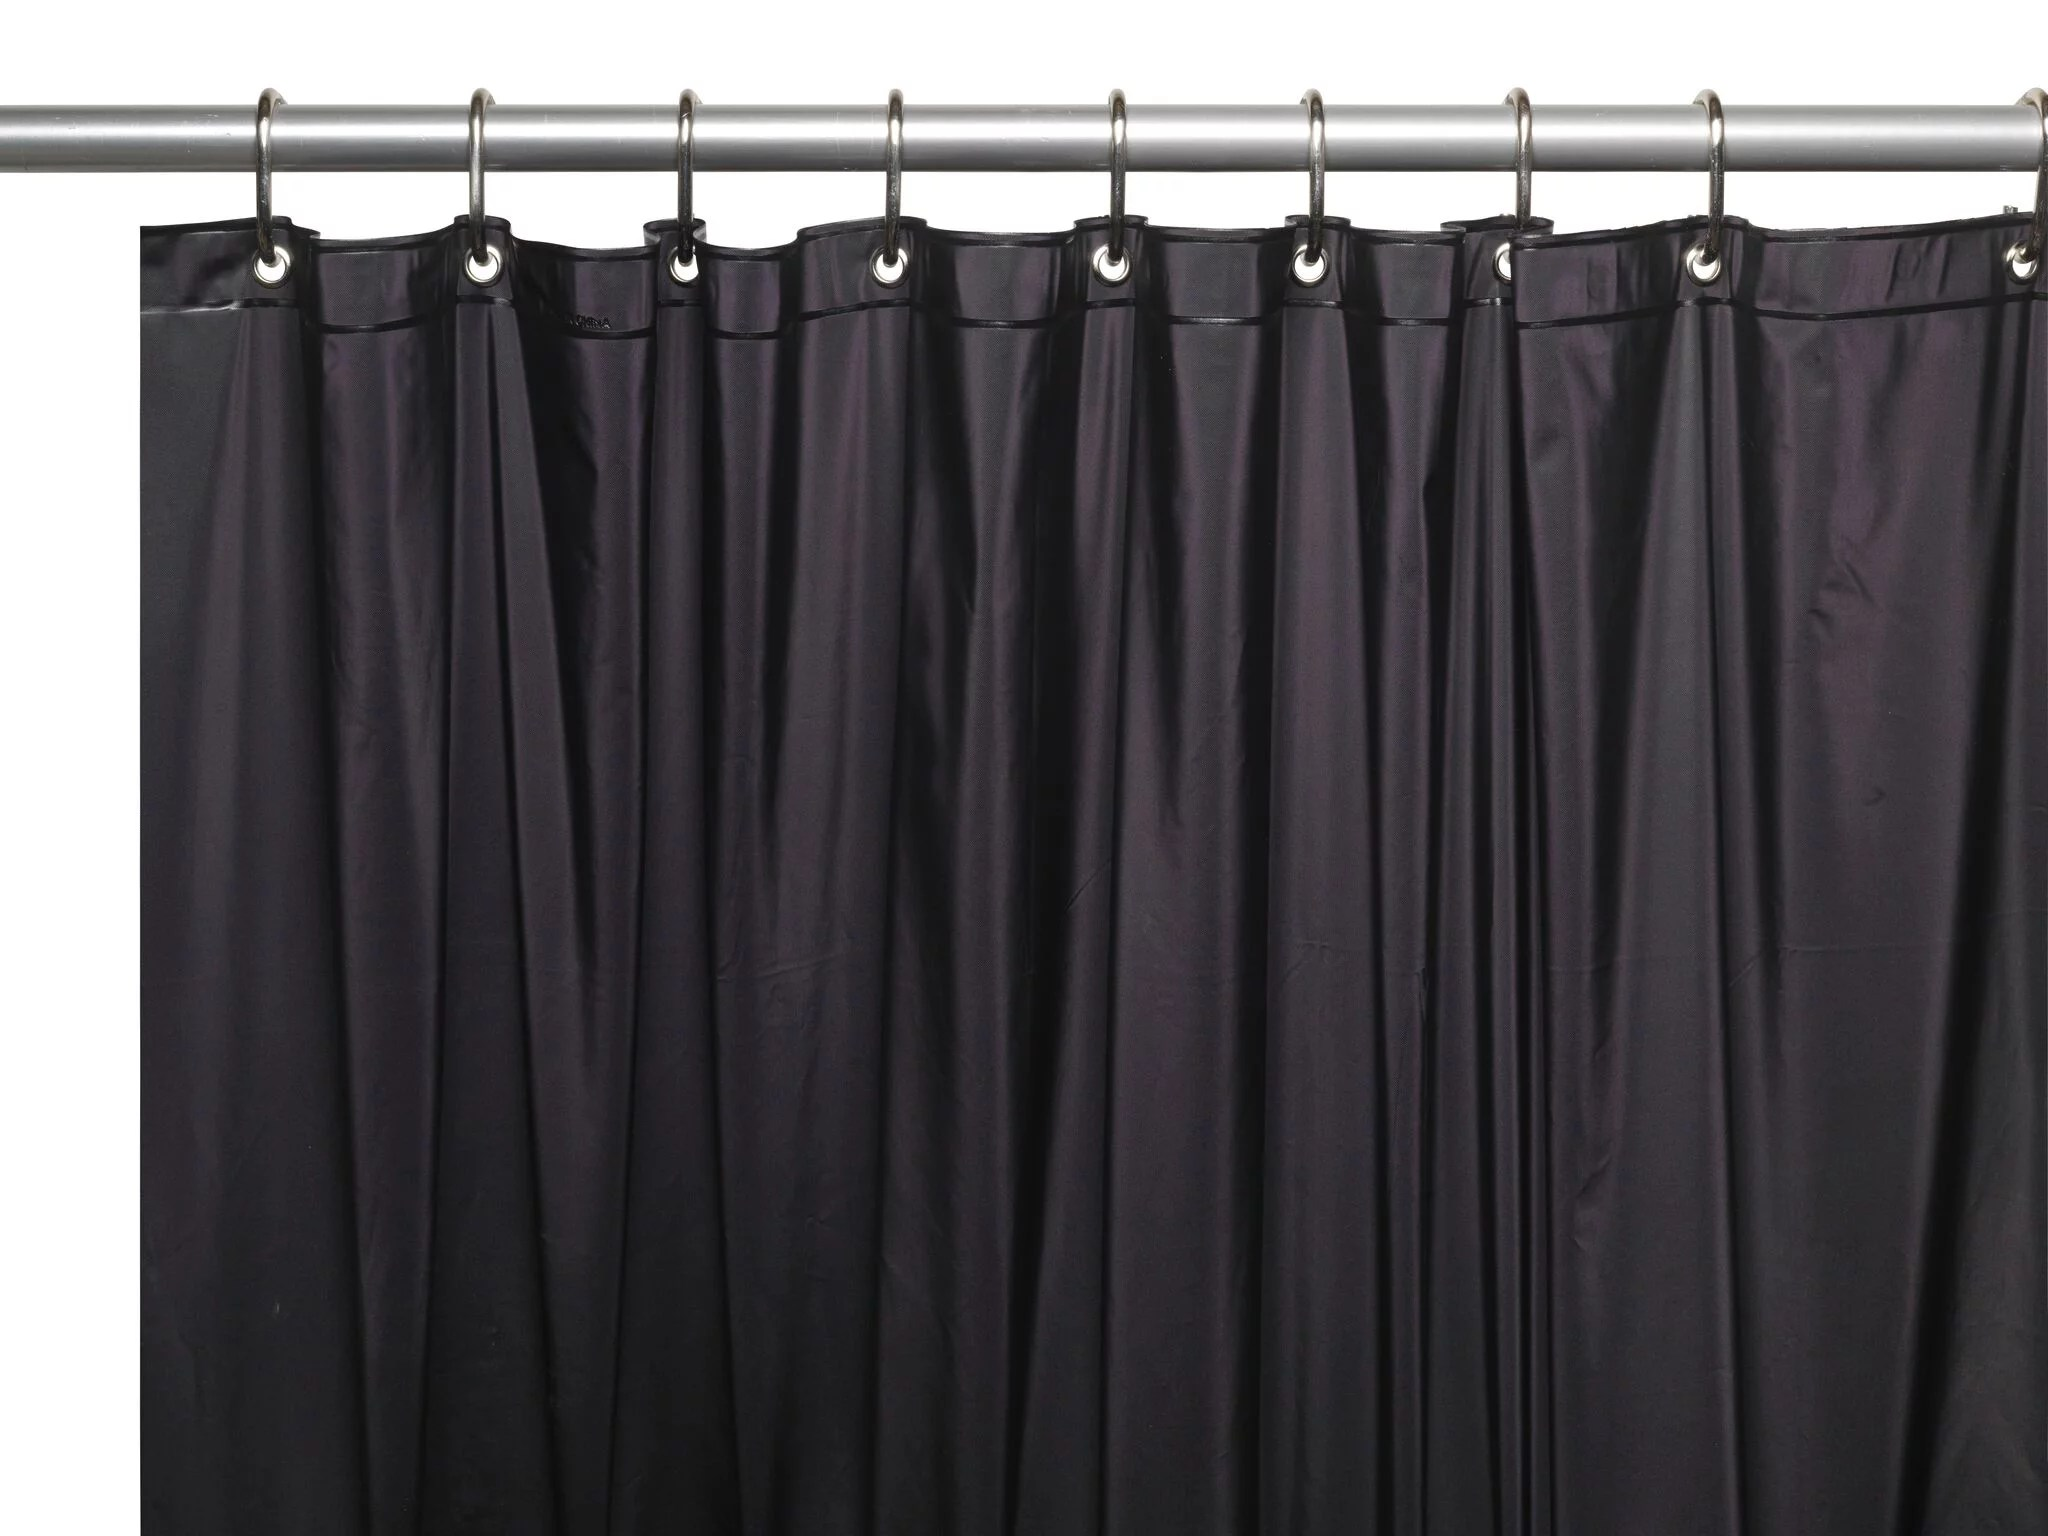 hotel collection premium heavy duty vinyl shower curtain liner with metal grommets black